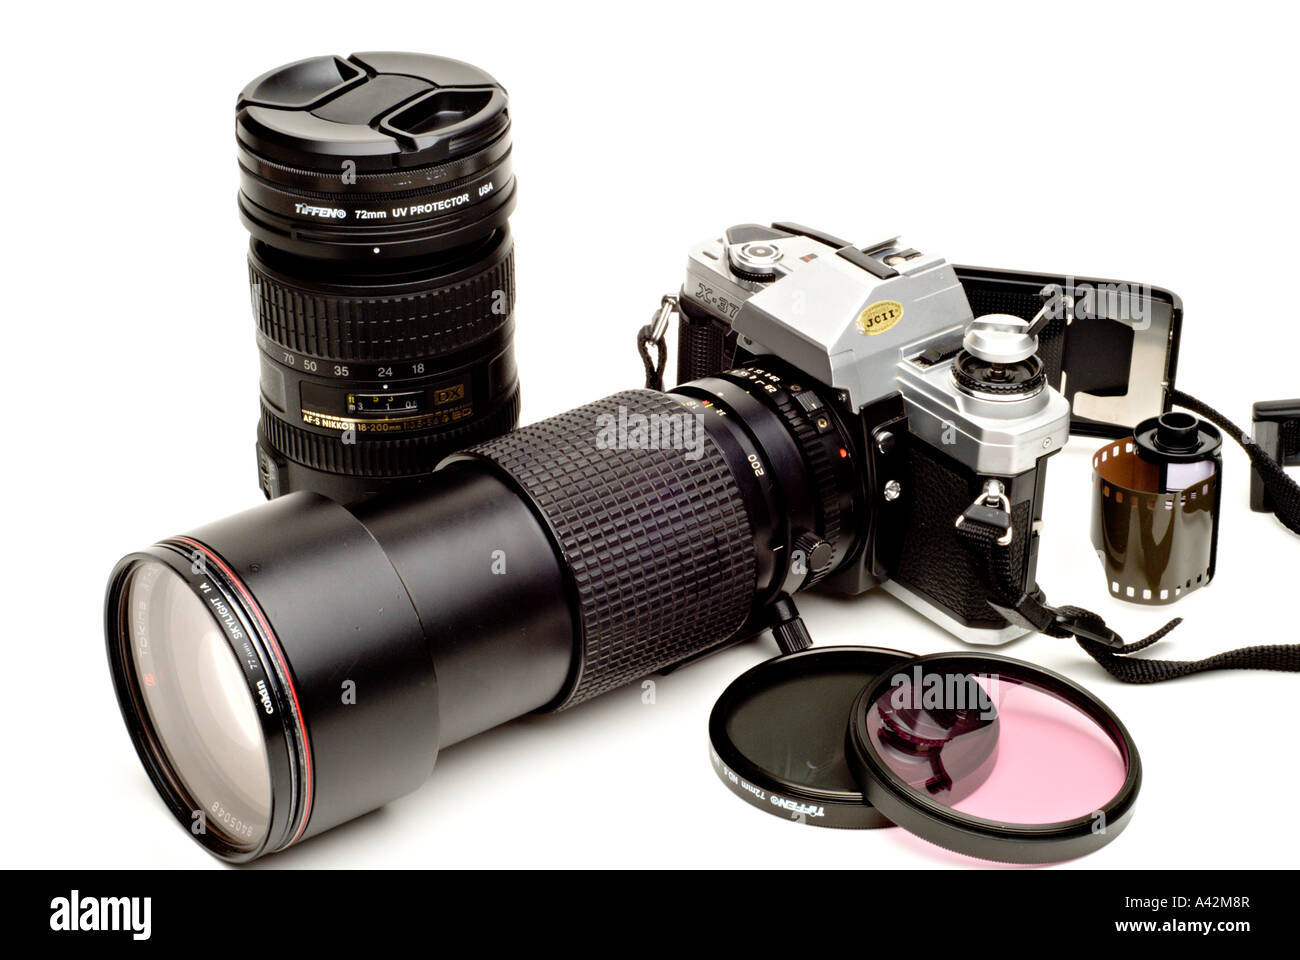 Old SLR camera with film lenses and filters - Stock Image